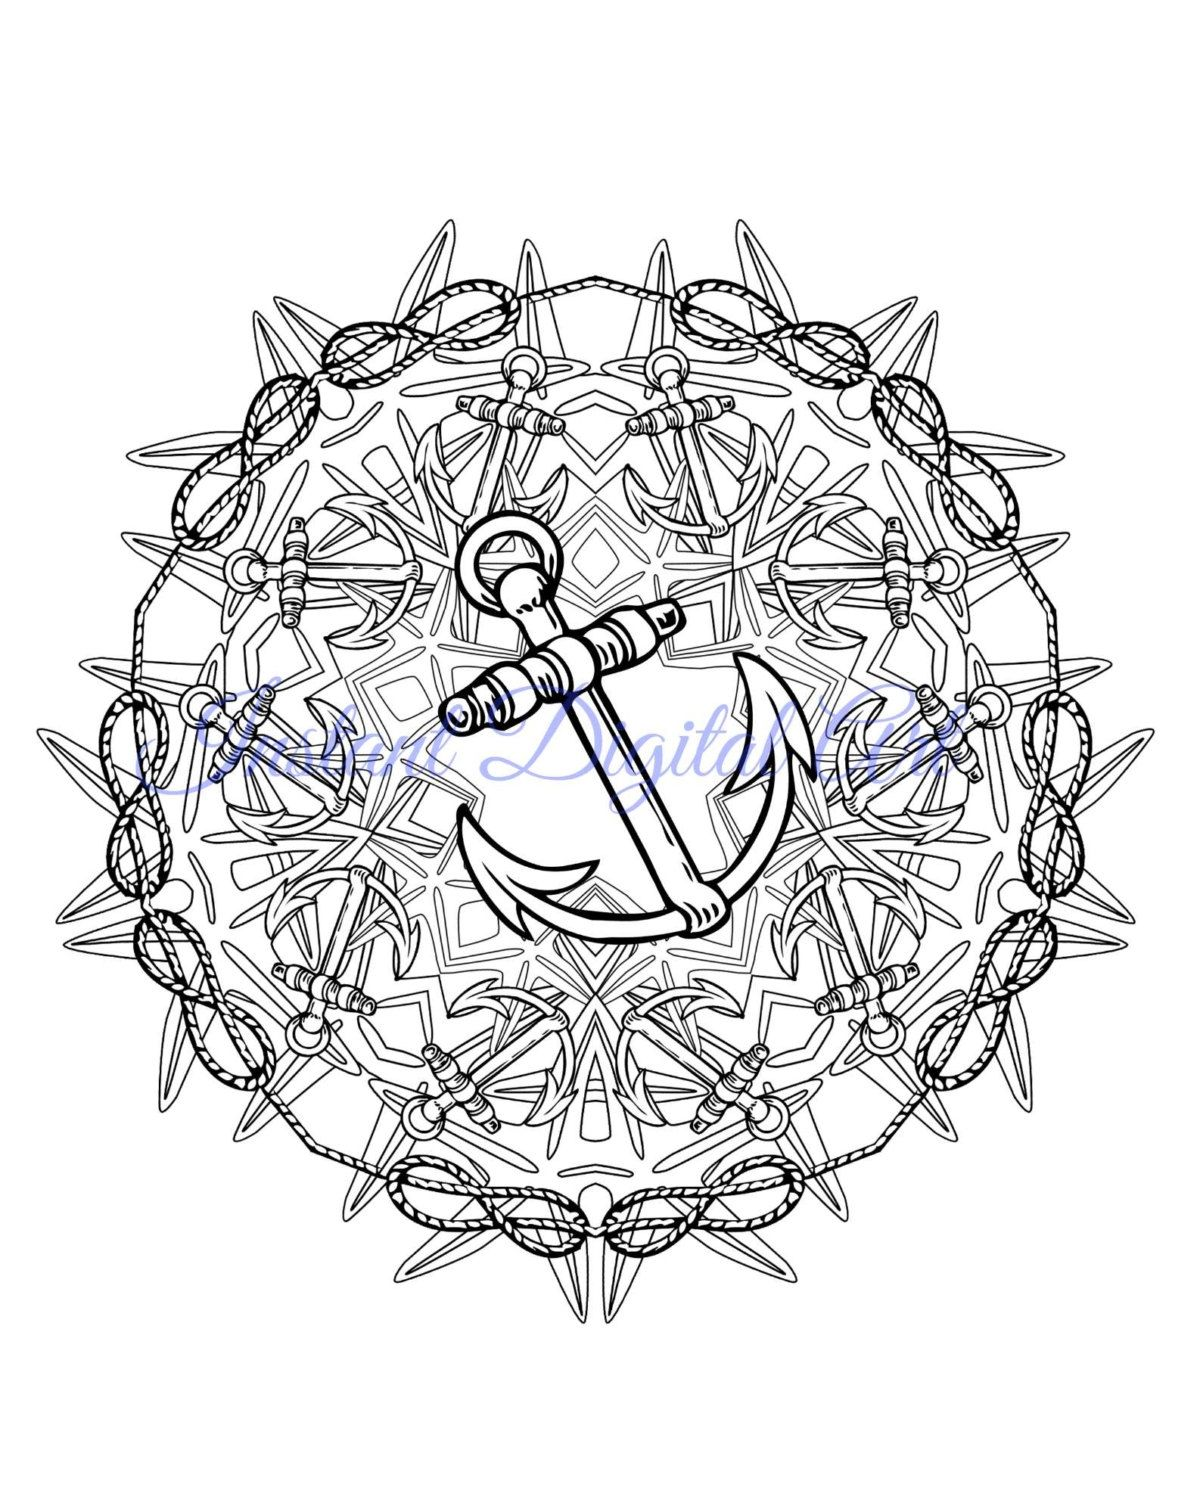 Nautical Mandala Coloring Pages Download Dinosaur Coloring Pages Mandala Coloring Pages Coloring Pages